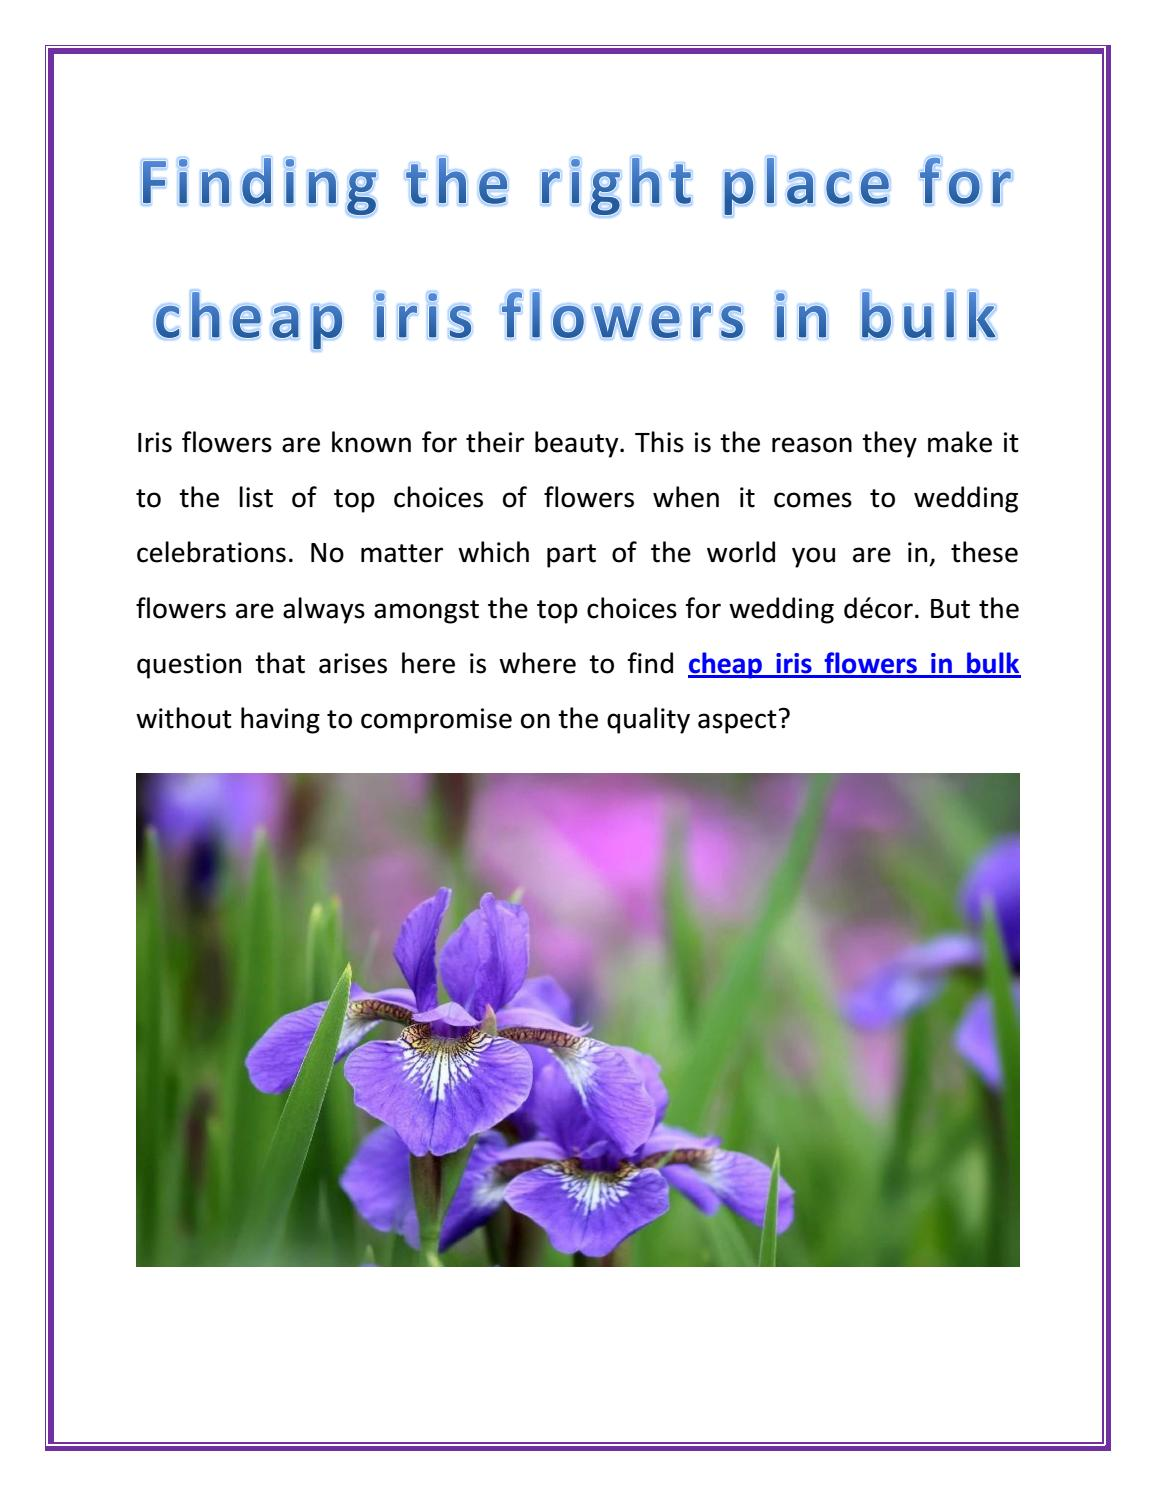 Finding the right place for cheap iris flowers in bulk by www finding the right place for cheap iris flowers in bulk by wholeblossoms issuu izmirmasajfo